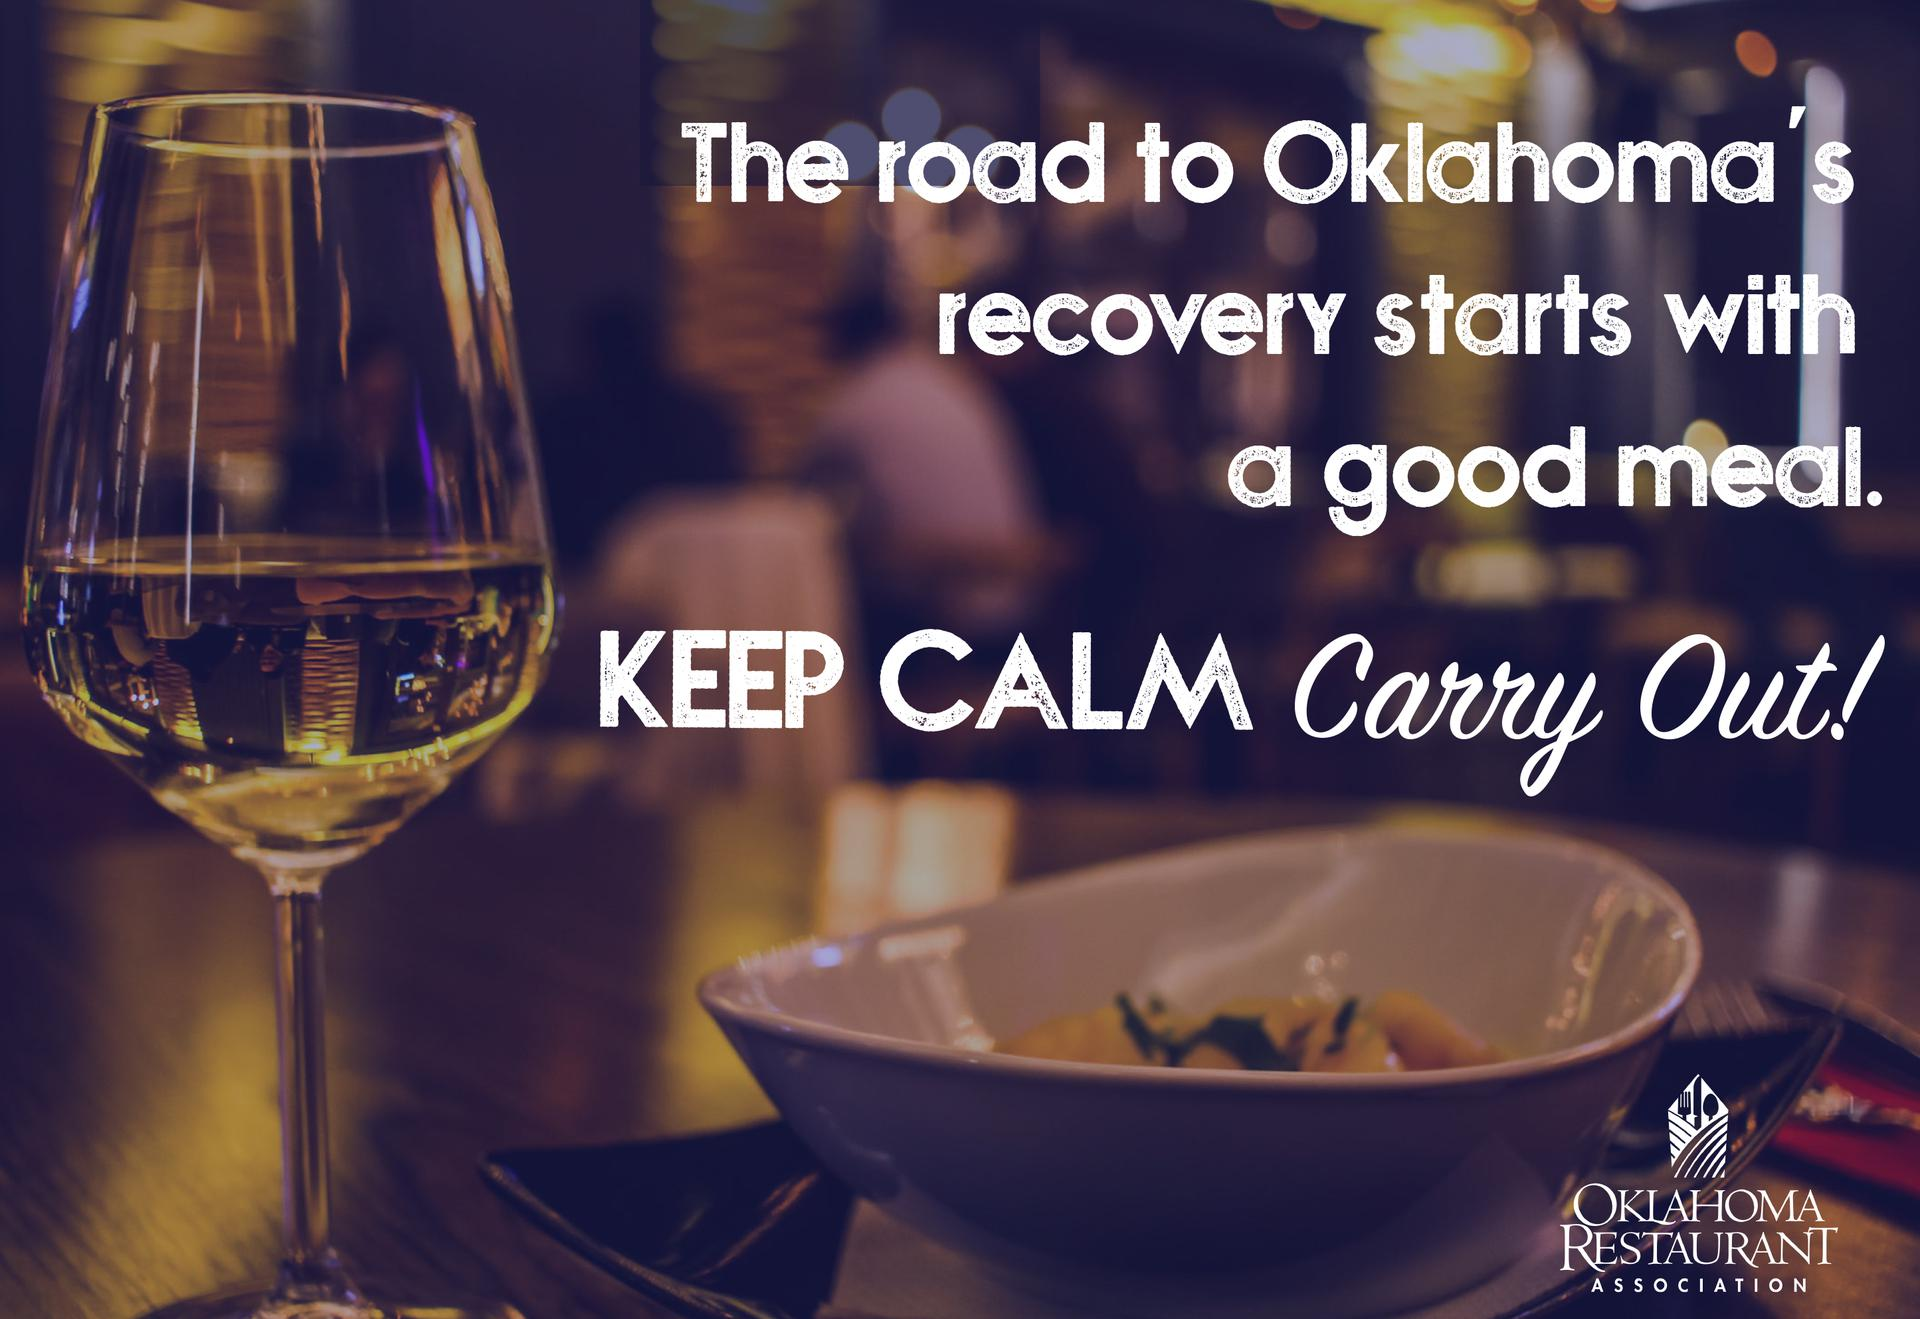 The Road to Oklahoma's recovery starts with a good meal. KEEP CALM Carry Out! Oklahoma Restaurant Association.